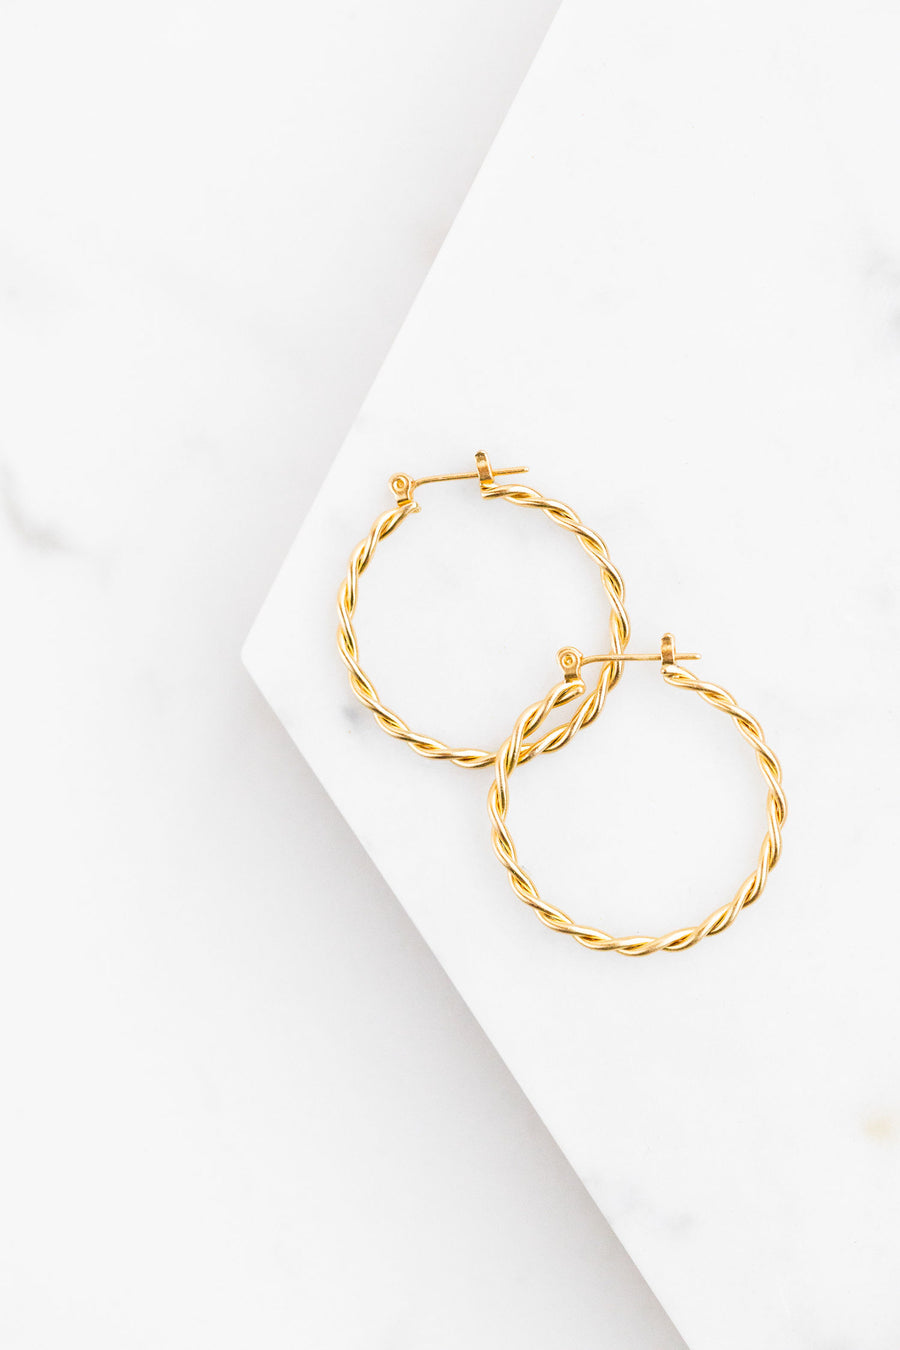 Find the perfect pair of earrings you're looking for from Charme Silkiner! These antiqued gold spiral hoop earrings are seriously stunning. Perfect to dress or dress down any outfit the Salem Earrings are the perfect must have for everyone!